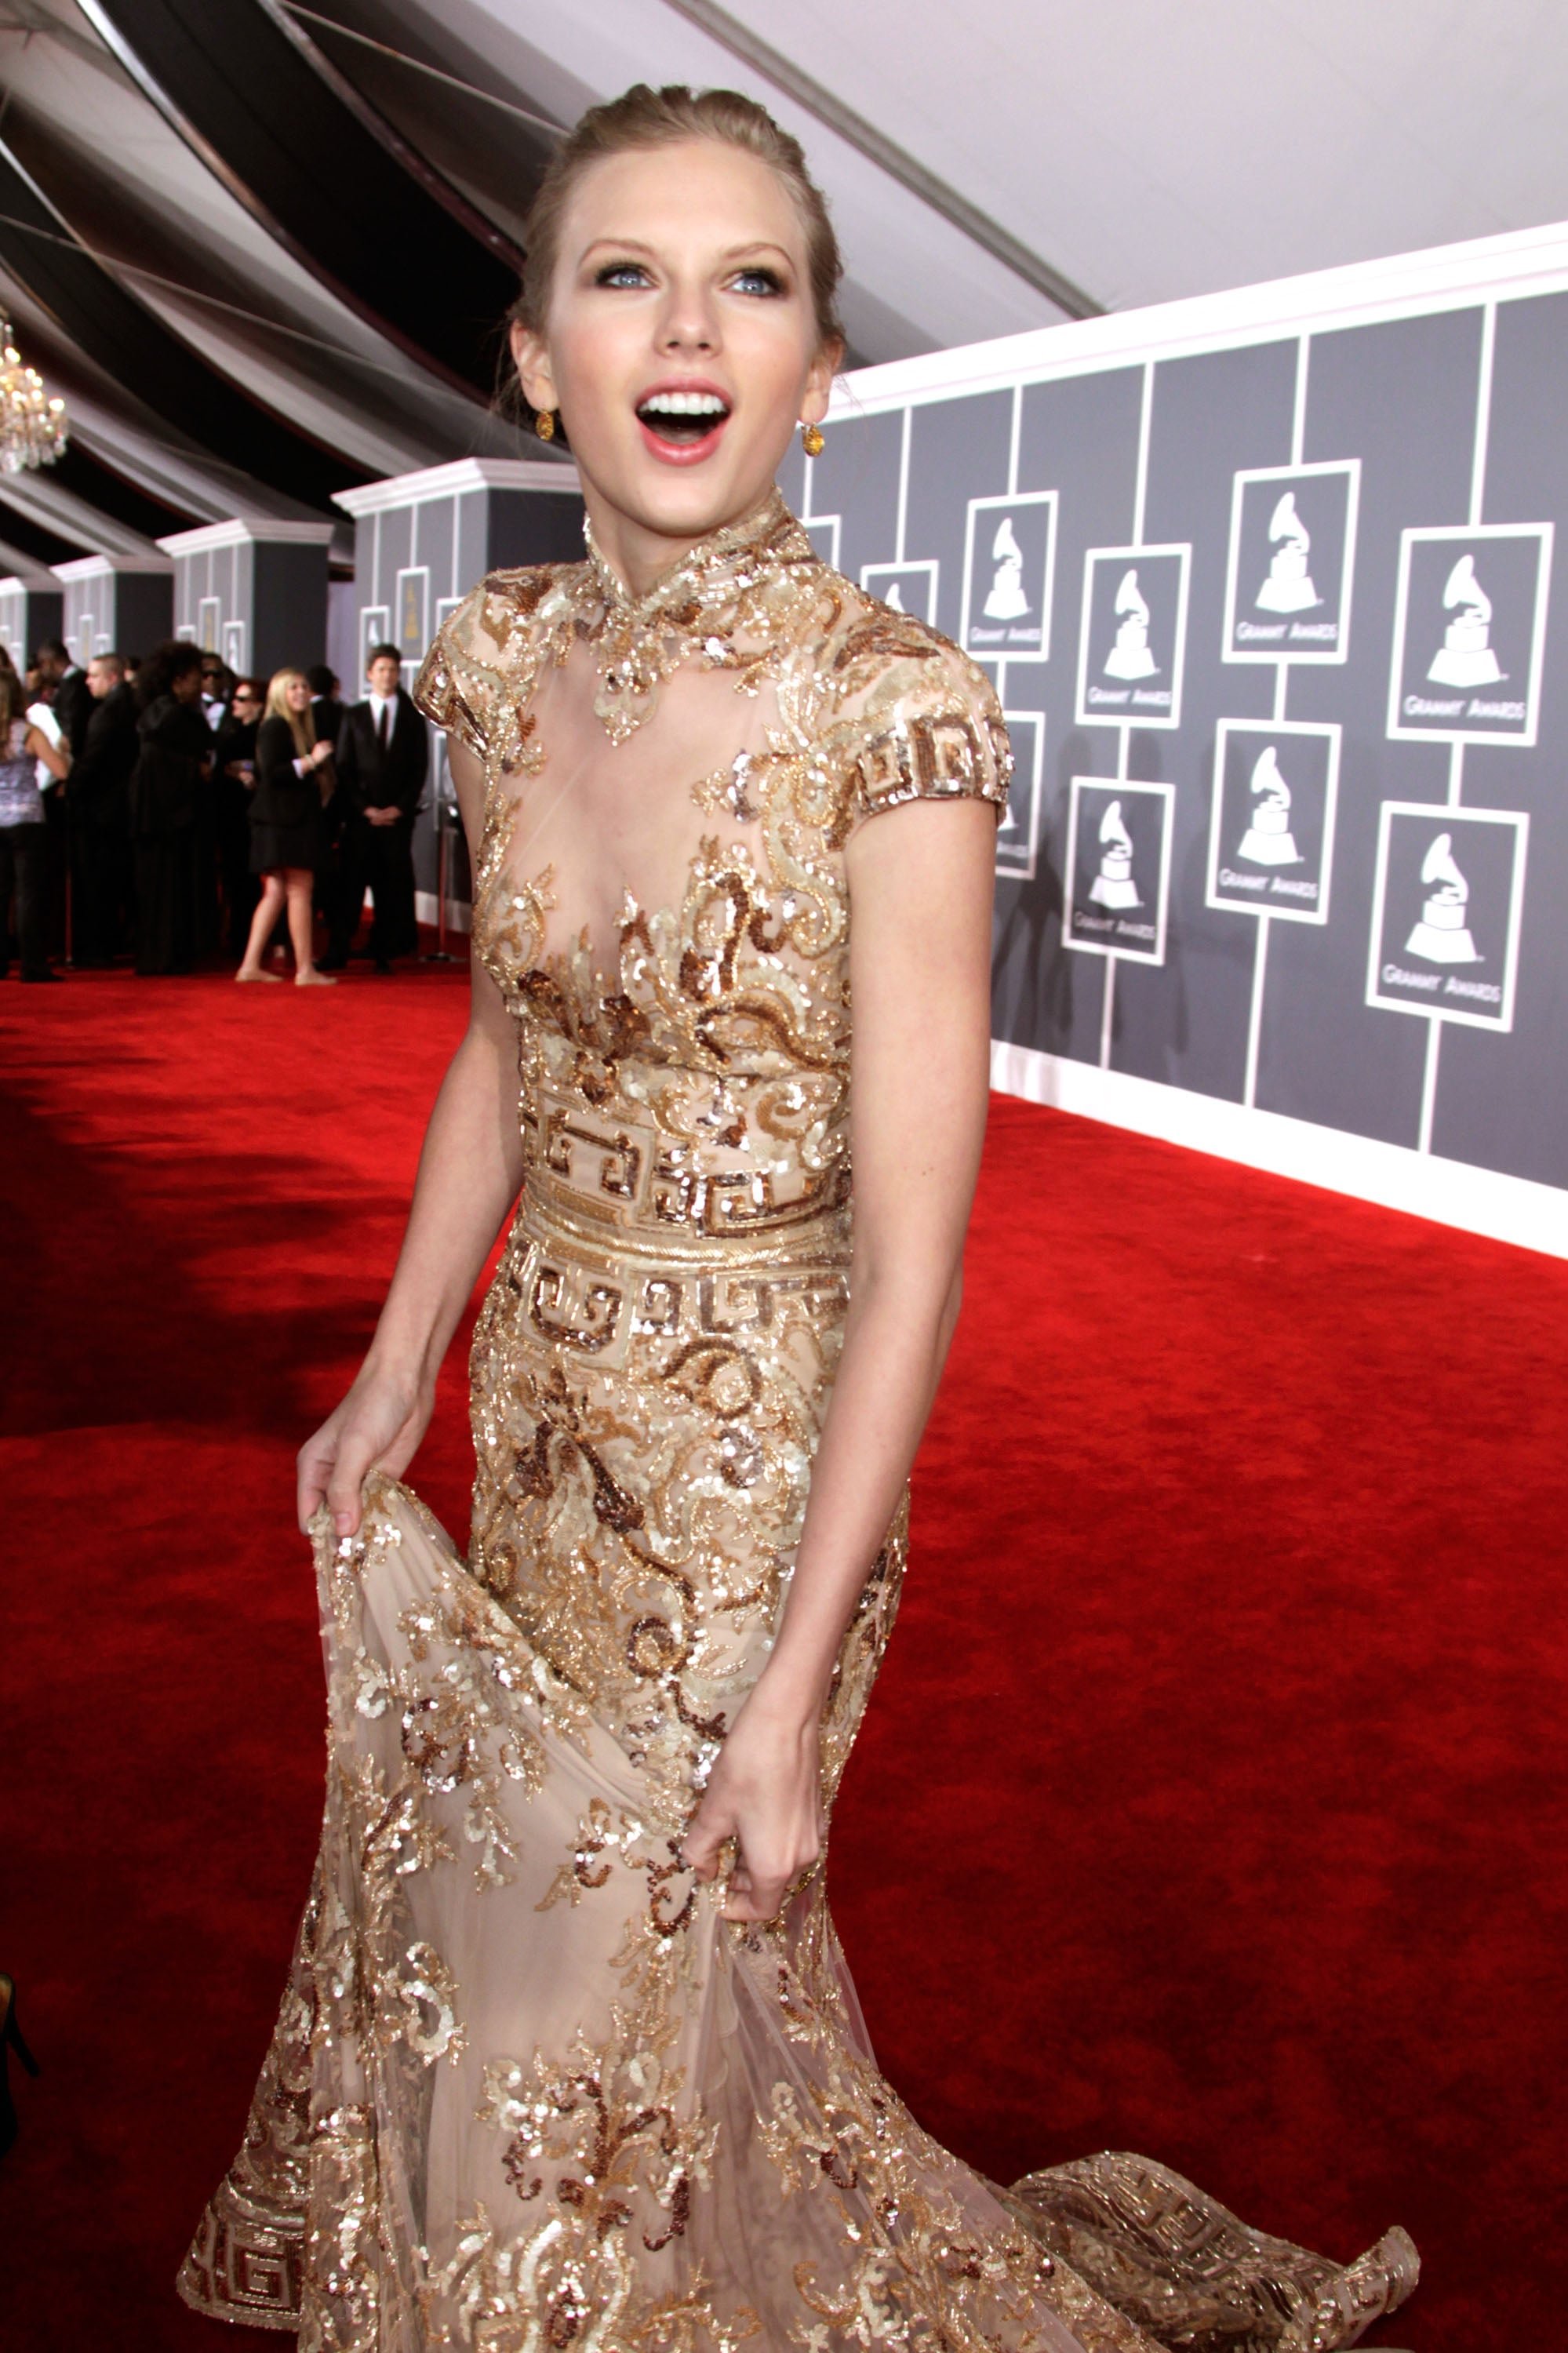 She expressed her happiness on the red carpet at the Grammys in February 2012.